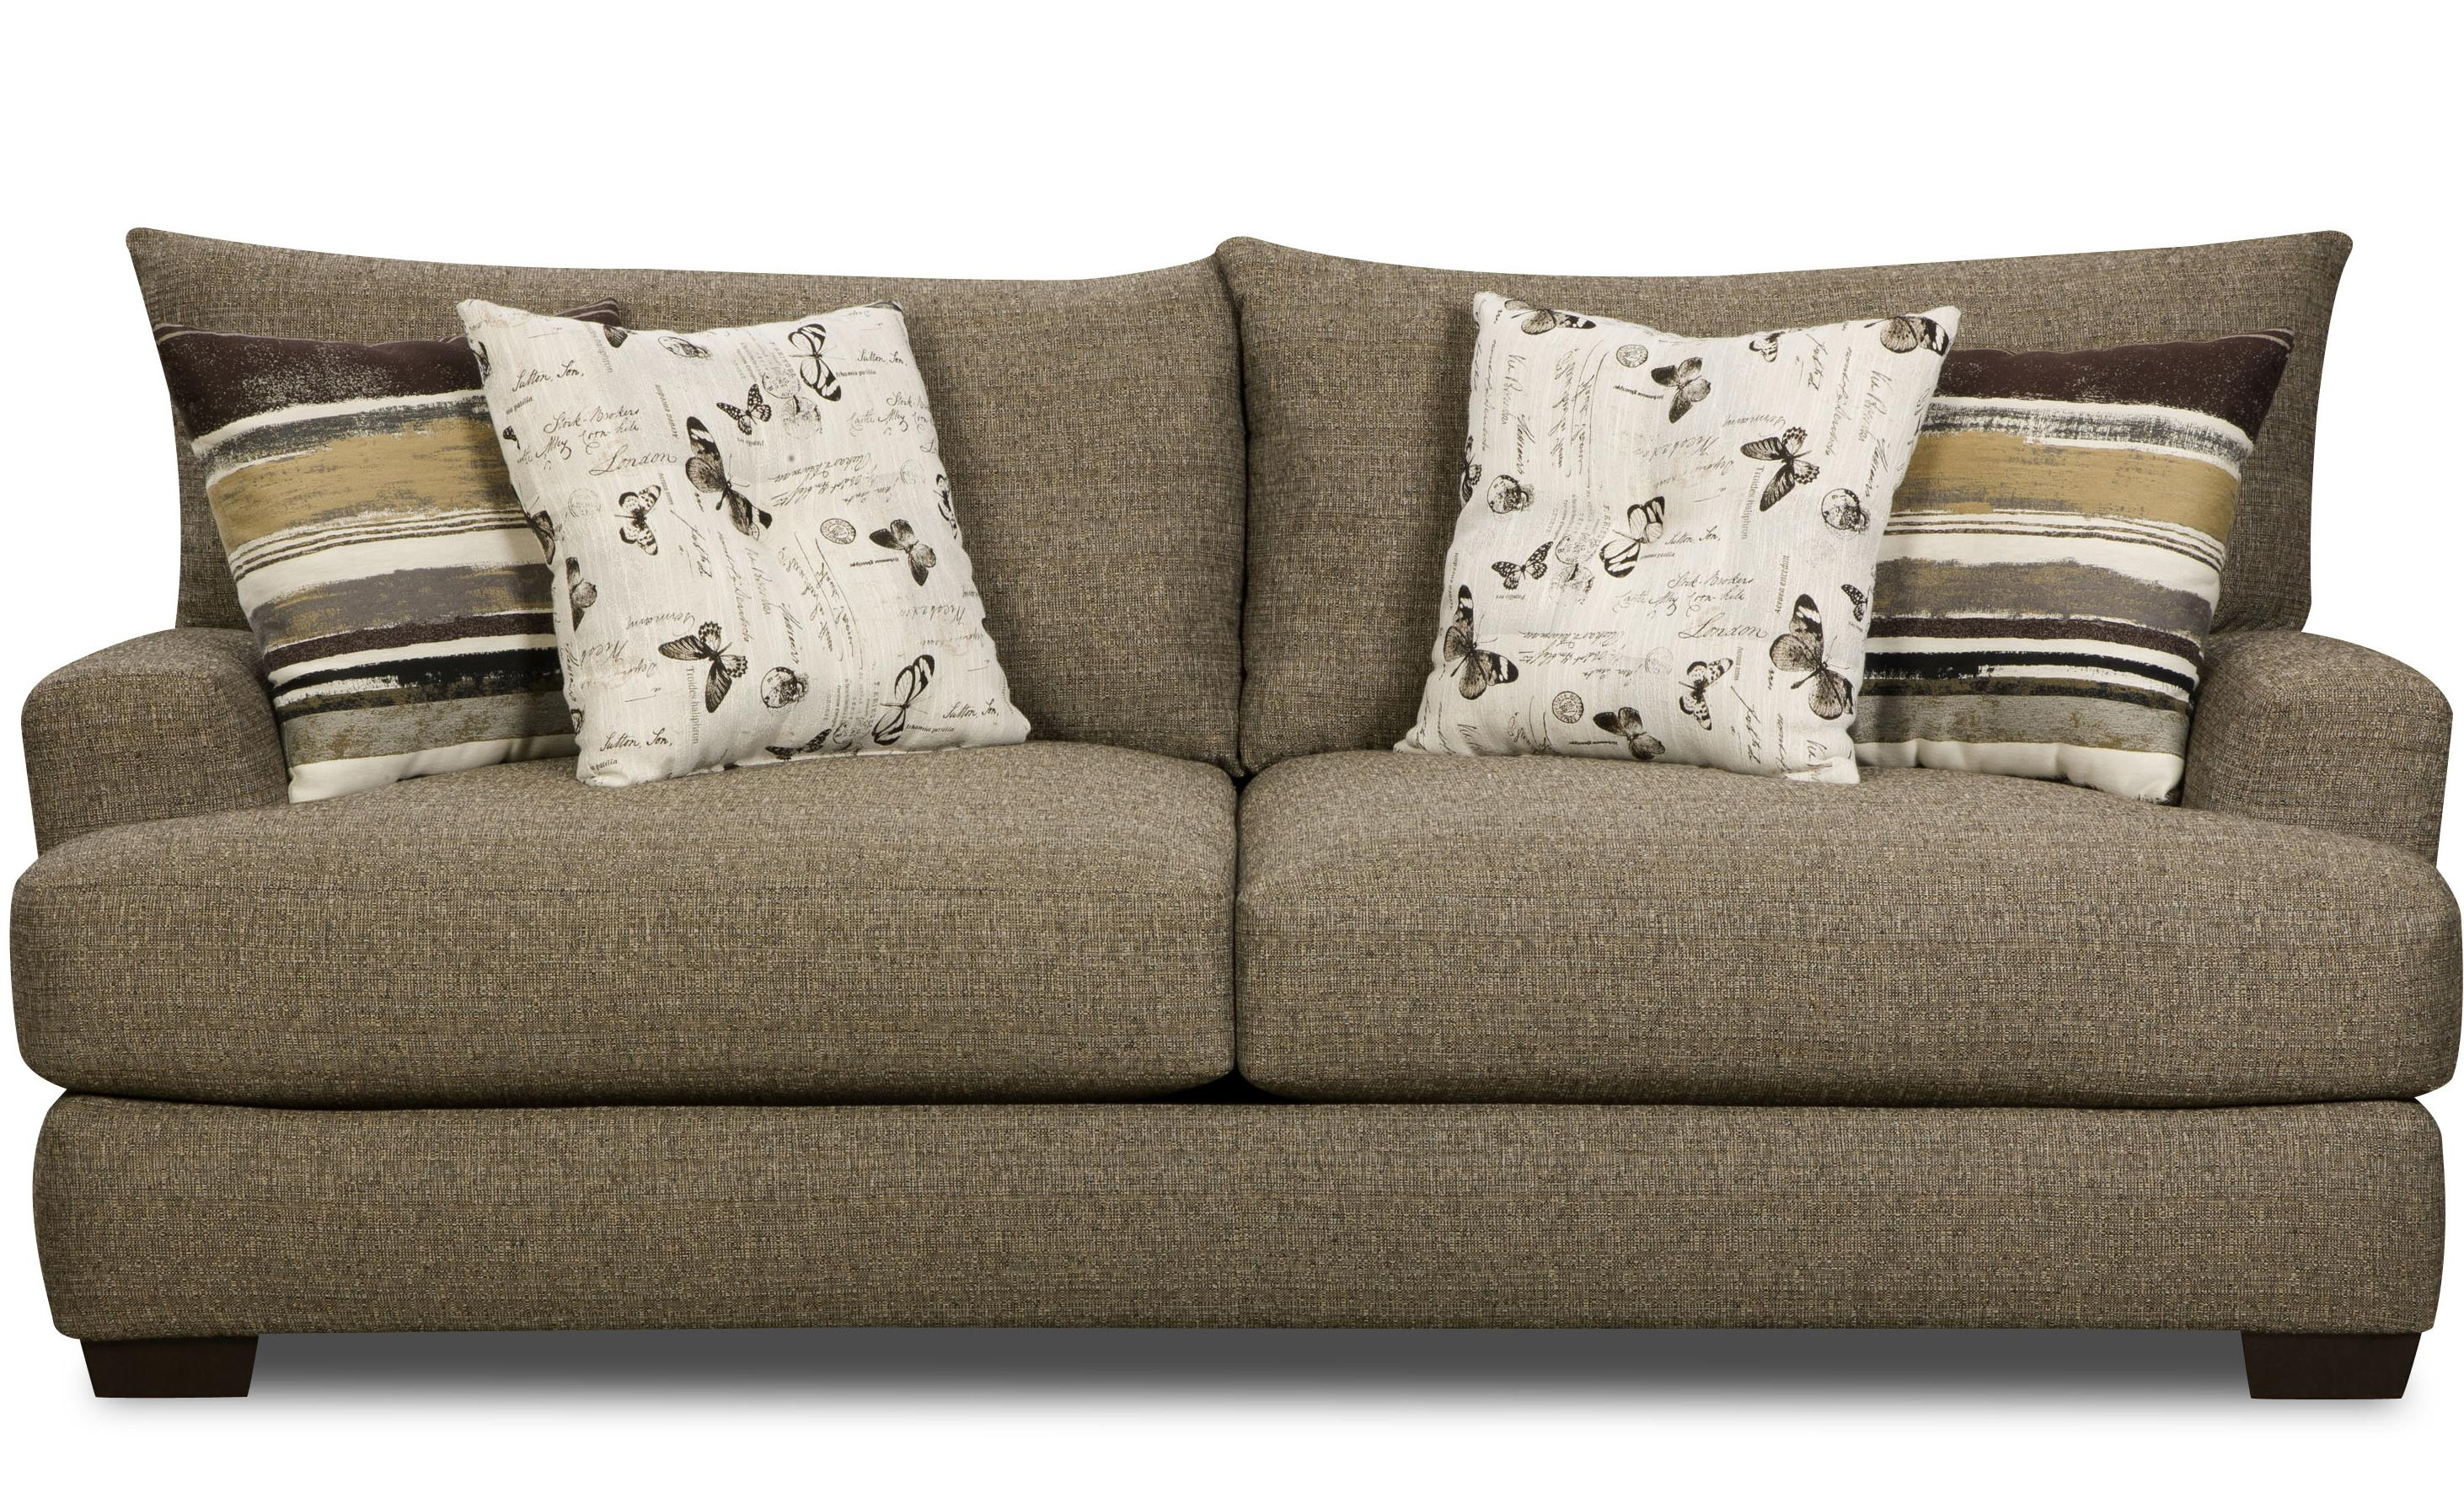 How to Revive Couch Cushions | Restuffing Couch Cushions | Refilling Sofa Cushions